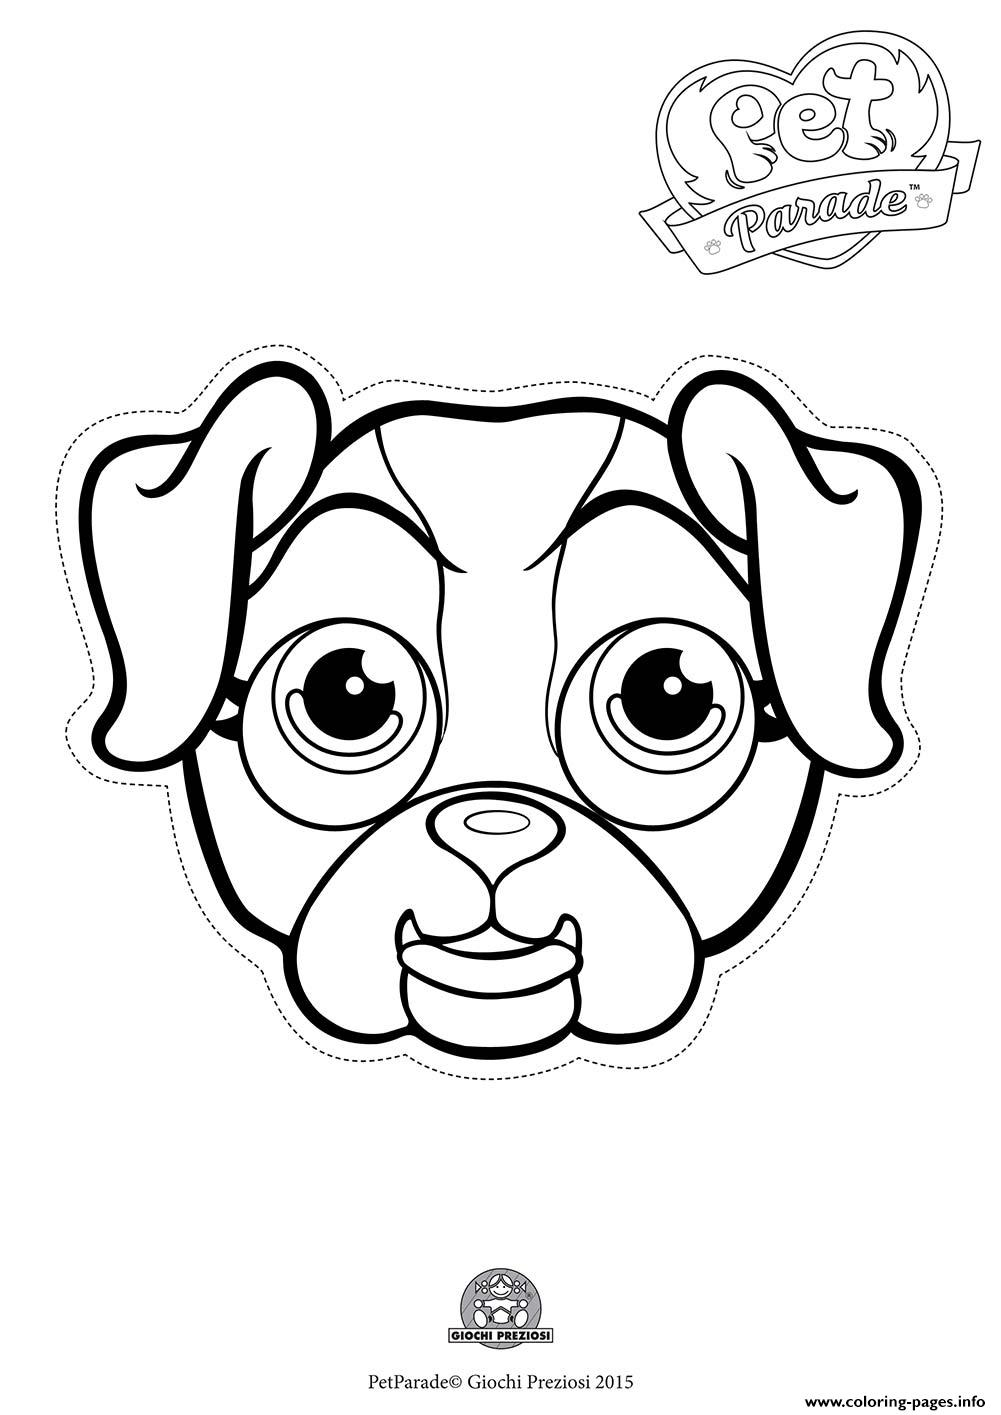 Pet Parade Cute Dog Bouledogue 2 coloring pages